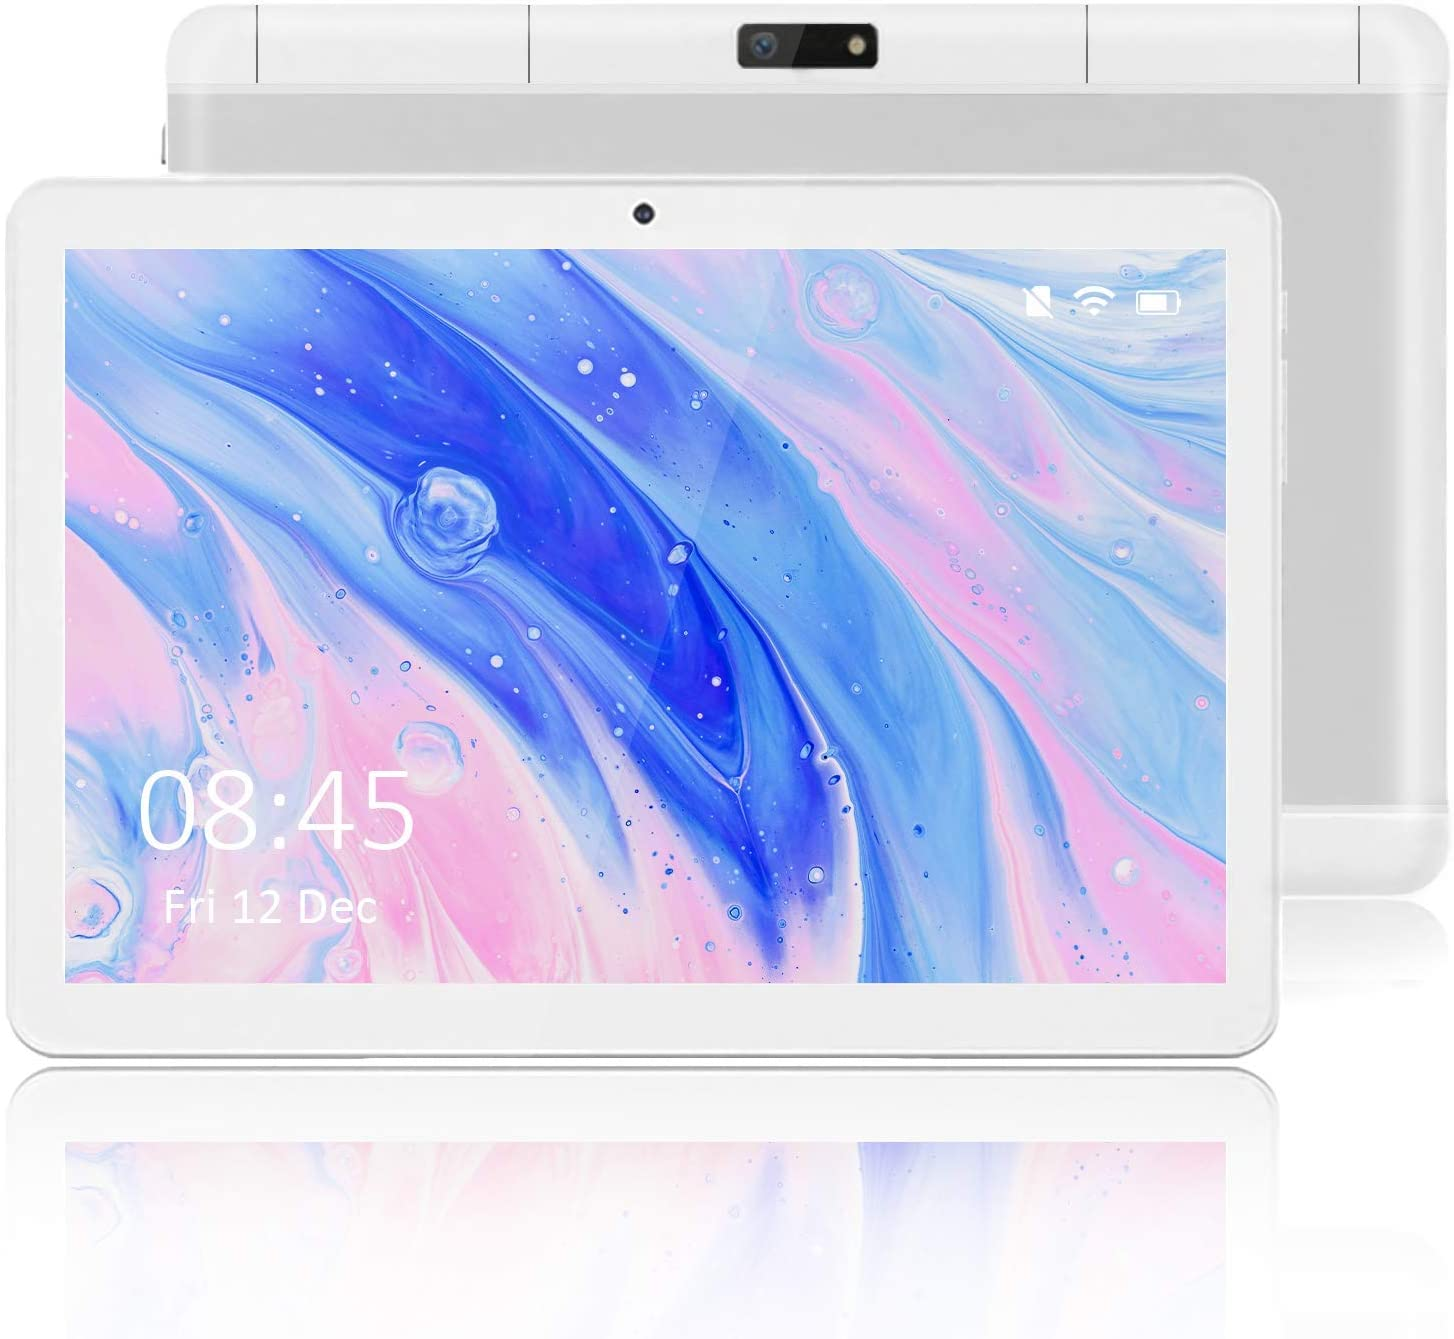 Tablet 10 Inch with 3G Android 10.0 OS (Google GMS Certified), 2GB RAM, 32GB ROM, Wi-Fi, Bluetooth, Dual Camera, IPS HD Display, GPS, FM – Silver